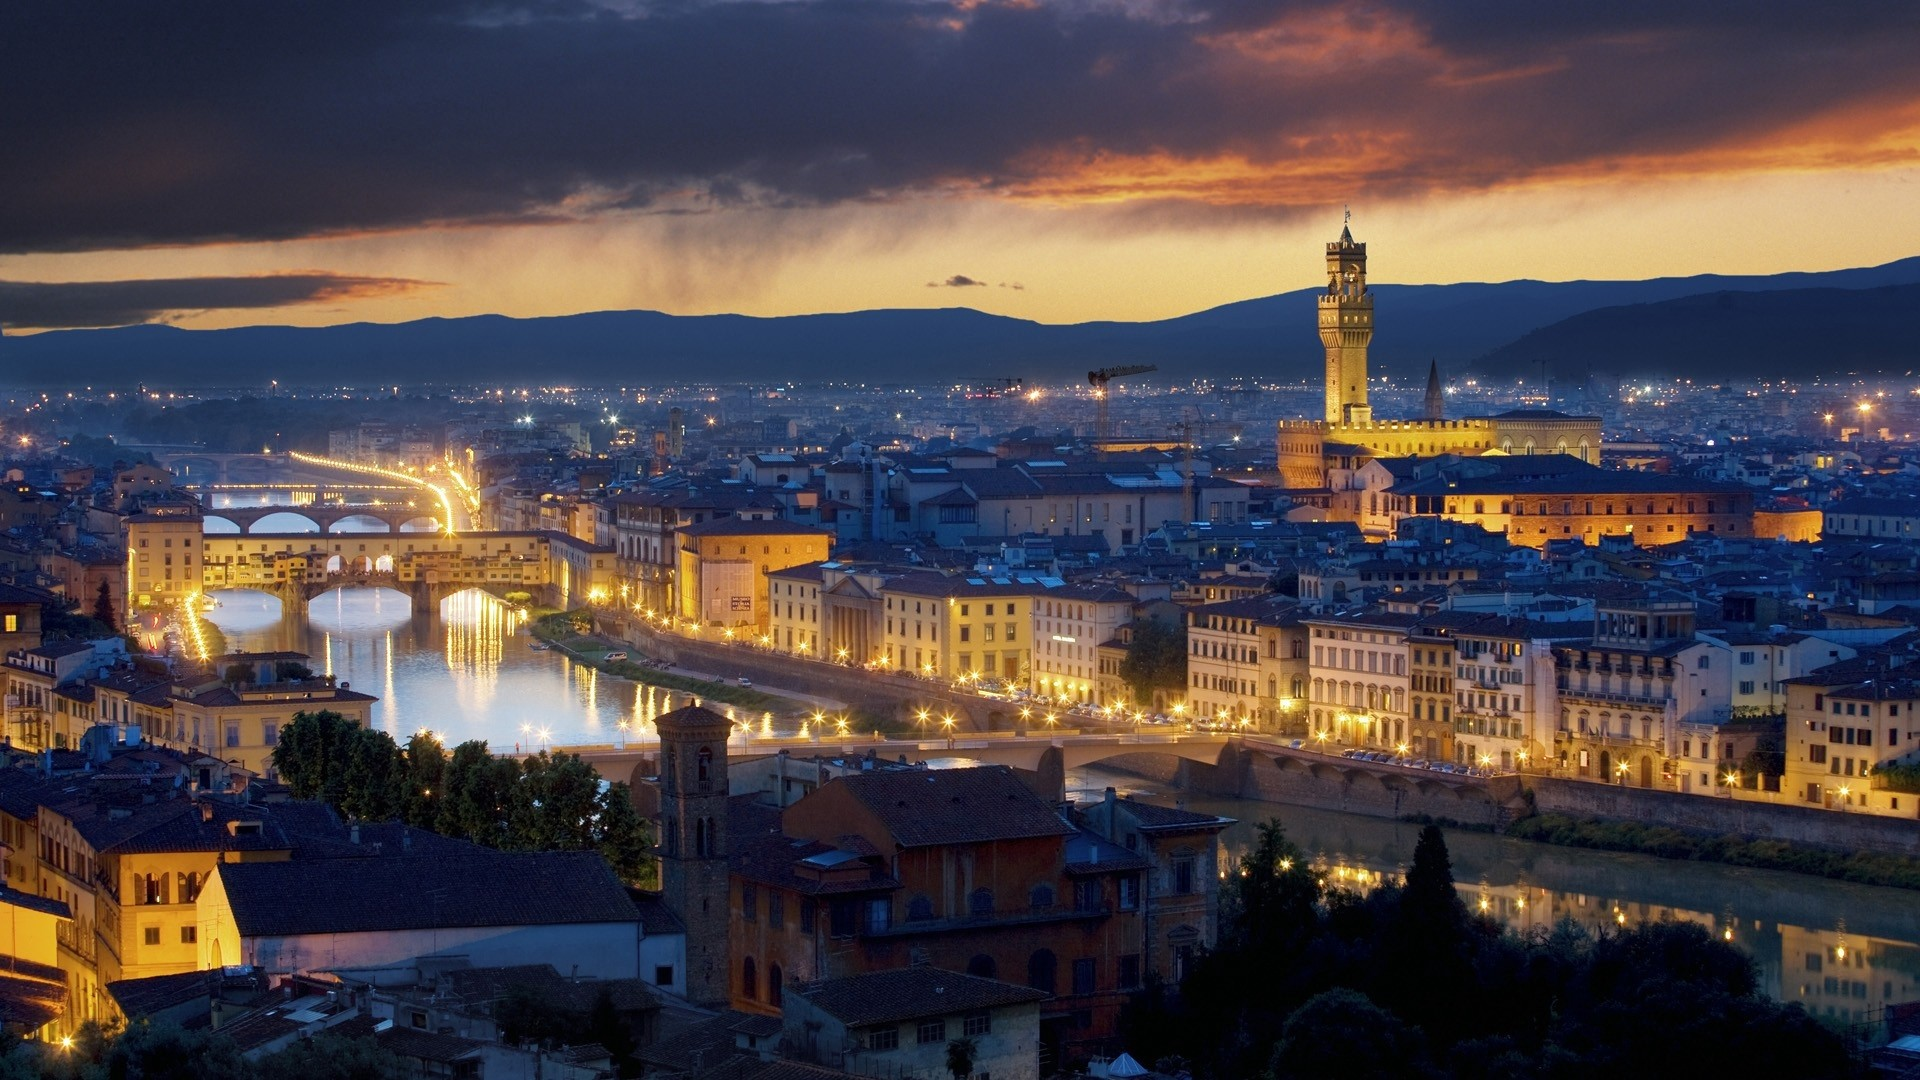 1920x1080  Wallpaper ponte vecchio, florence, italy, buildings, river,  lights city